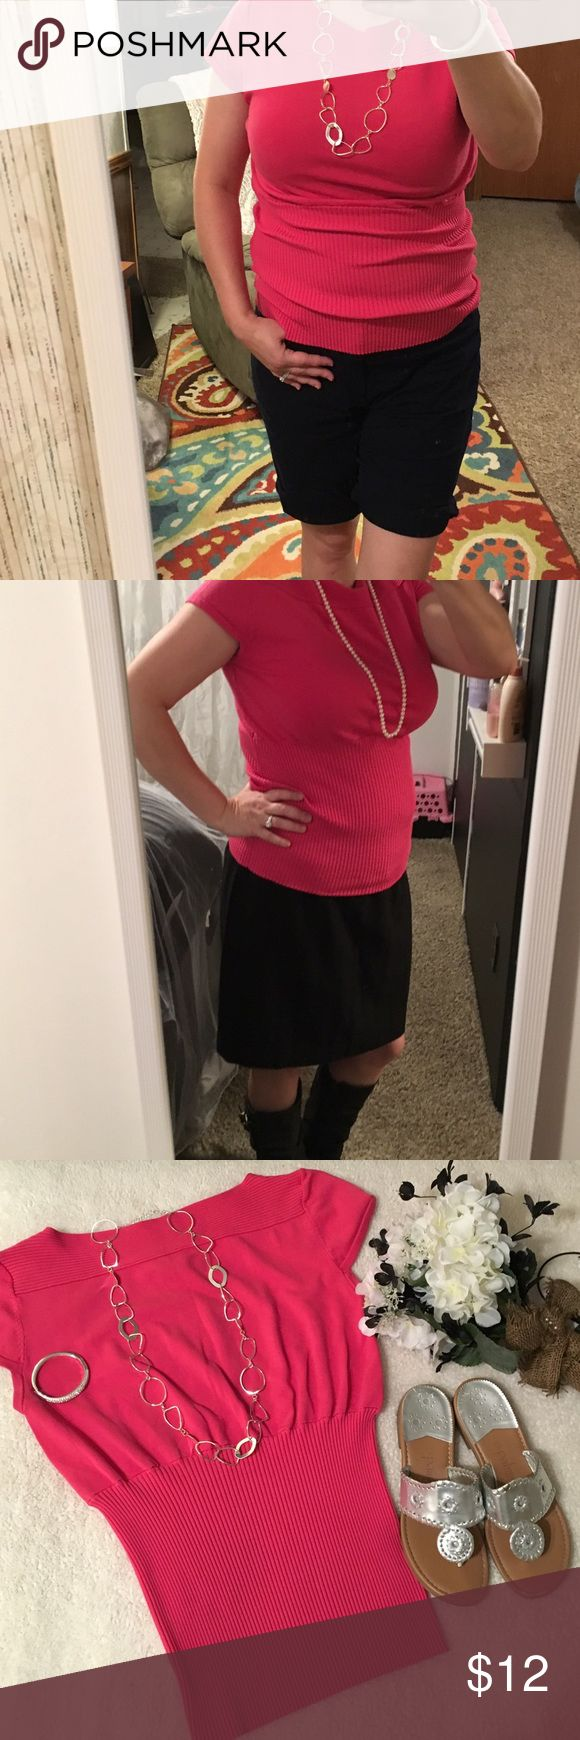 """Worthington ribbed short sleeve top Worthington dress top. Short """"cap"""" sleeved, pink, ribbed torso has a slimming effect. It looks better when wearing fitted. I'm a size 12 which makes the top look a bit baggy. It would fit a size 14-18 best. Has great stretch! Dress it up or down. Pairs great with silver & navy. Has a matching skirt size 16. That bundle has its own listing. Worthington Tops Blouses"""